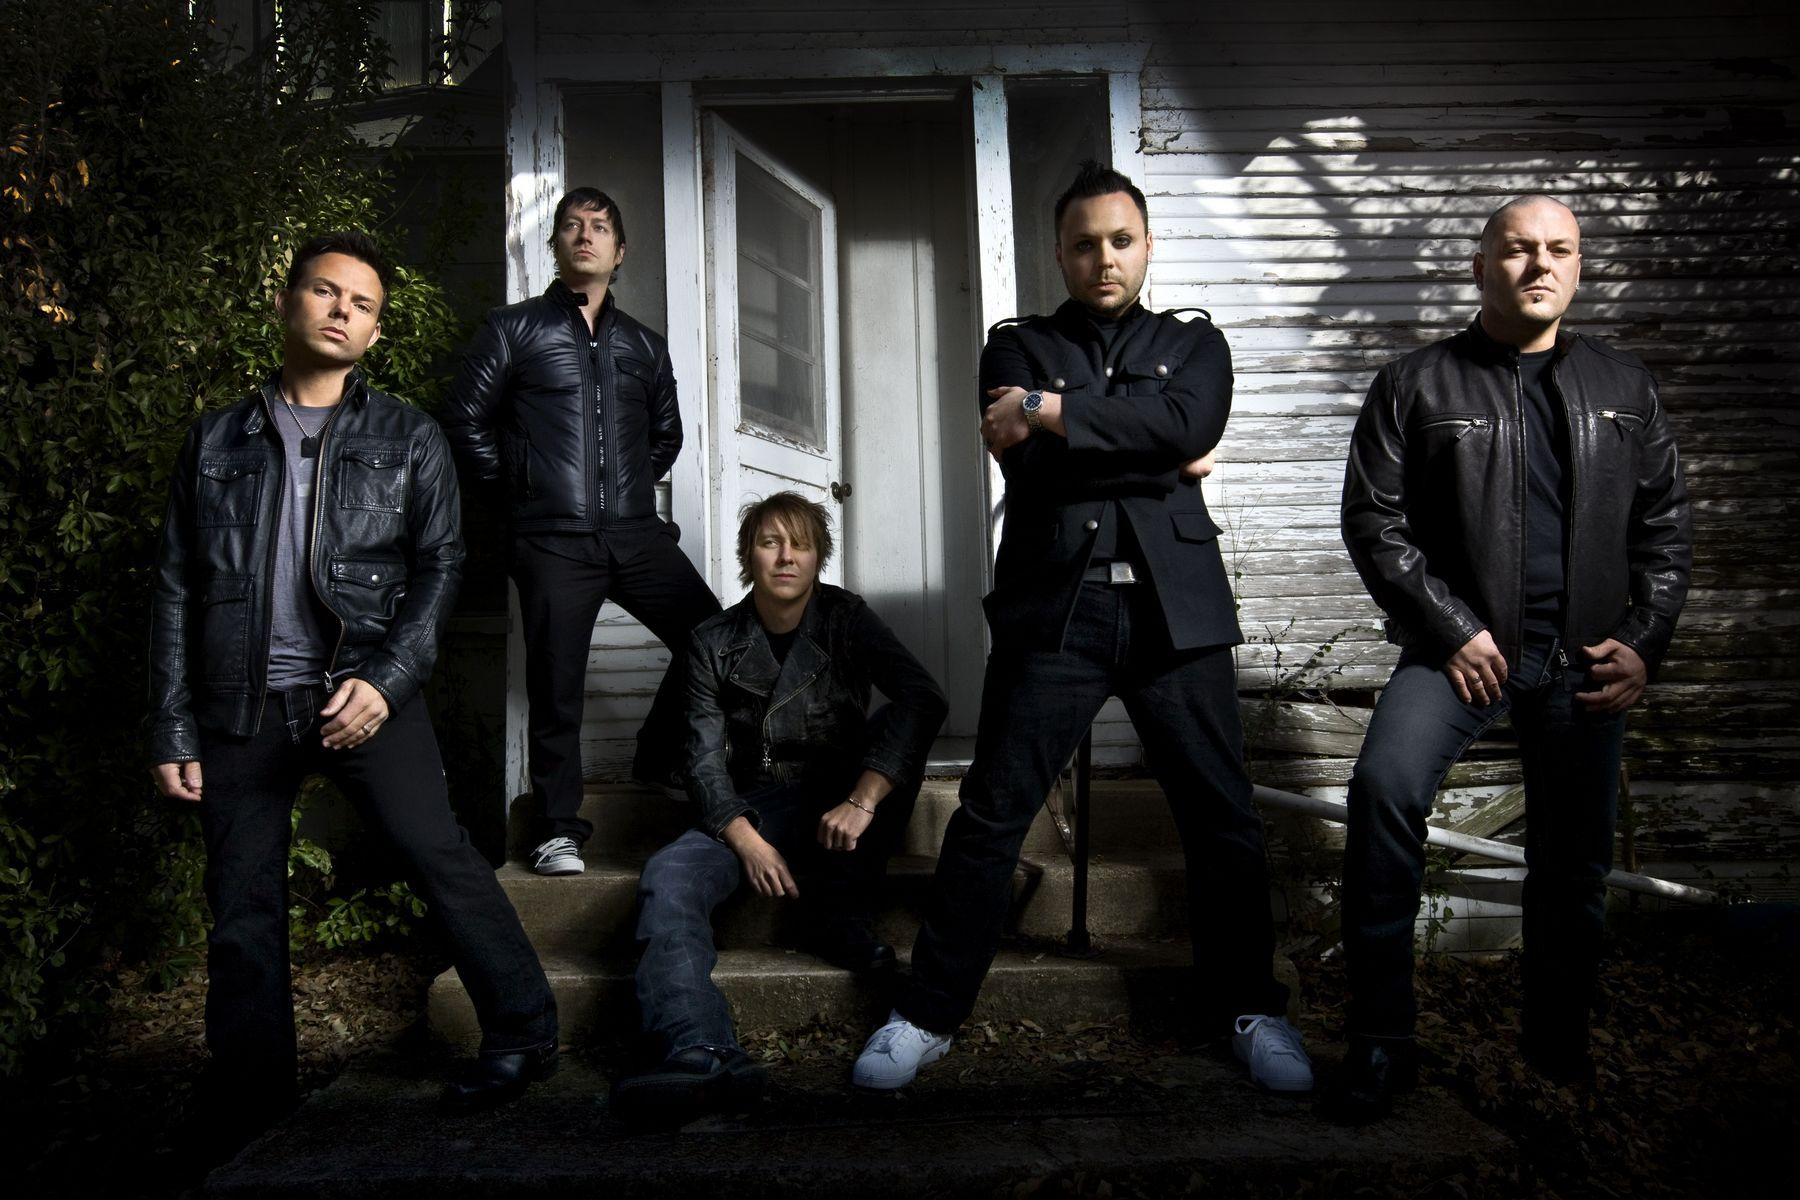 Blue October will perform at the Rapids Theatre on June 8.